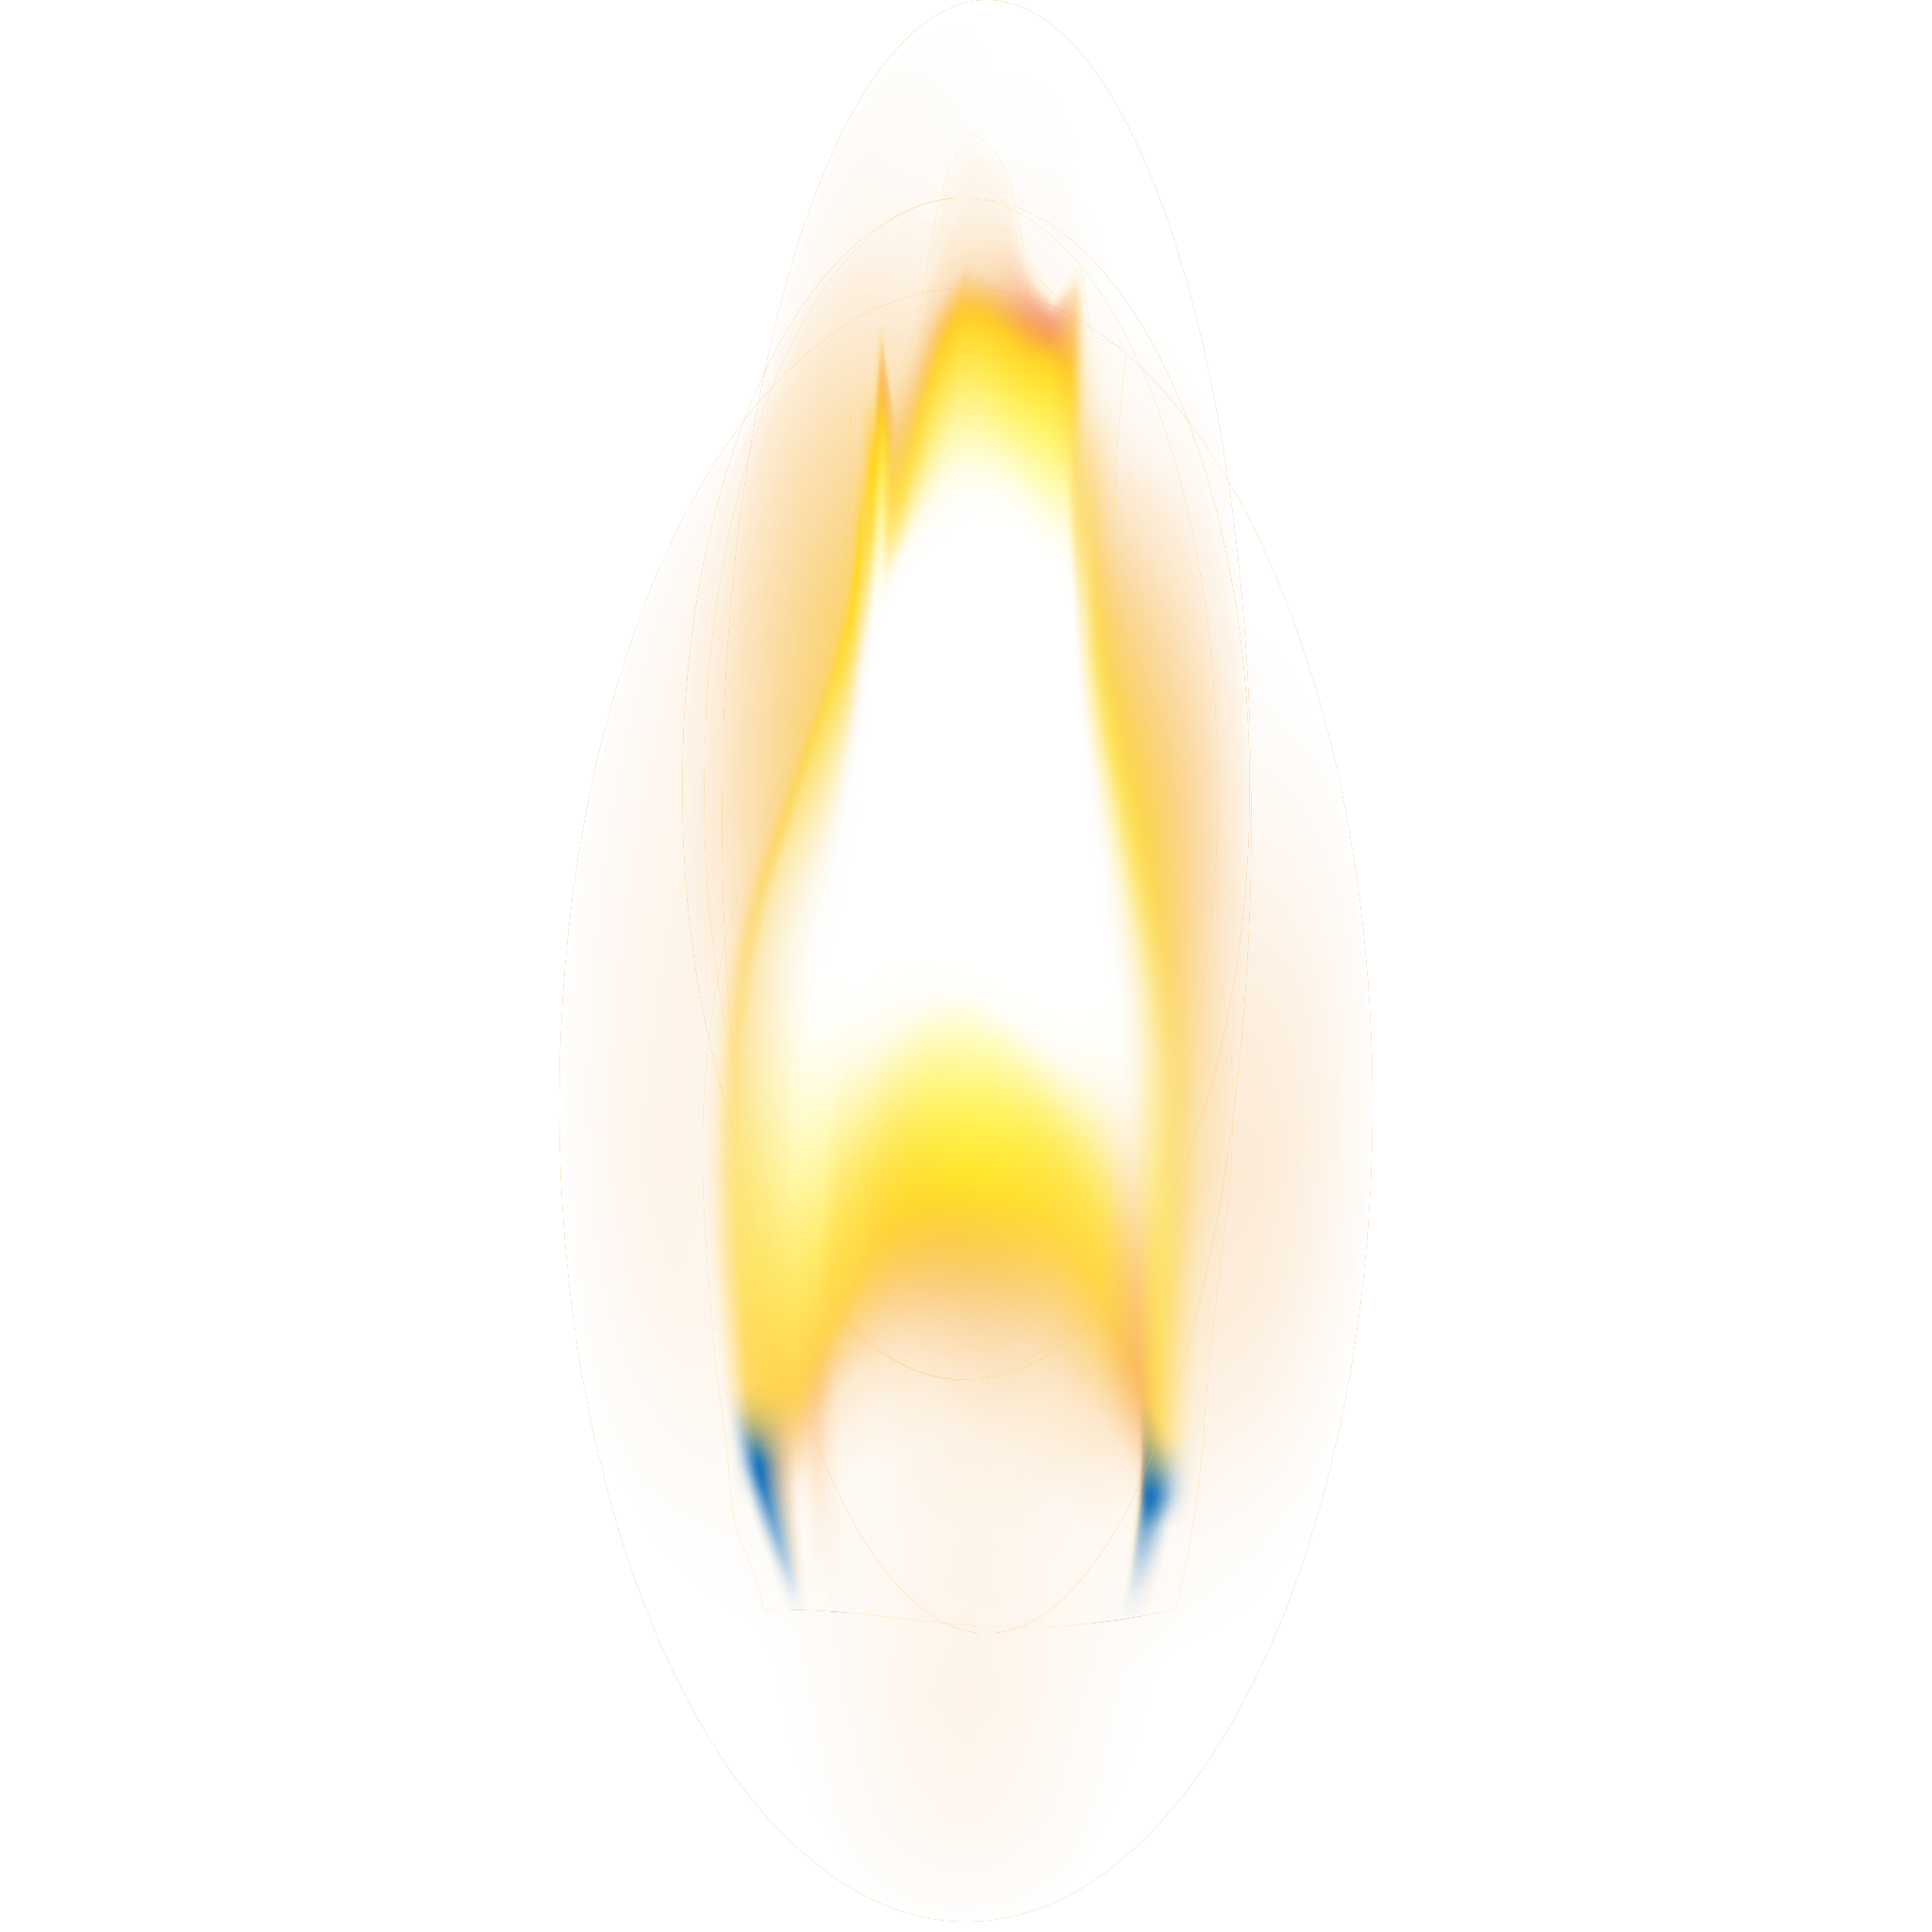 Candle flame png. Hd image free download